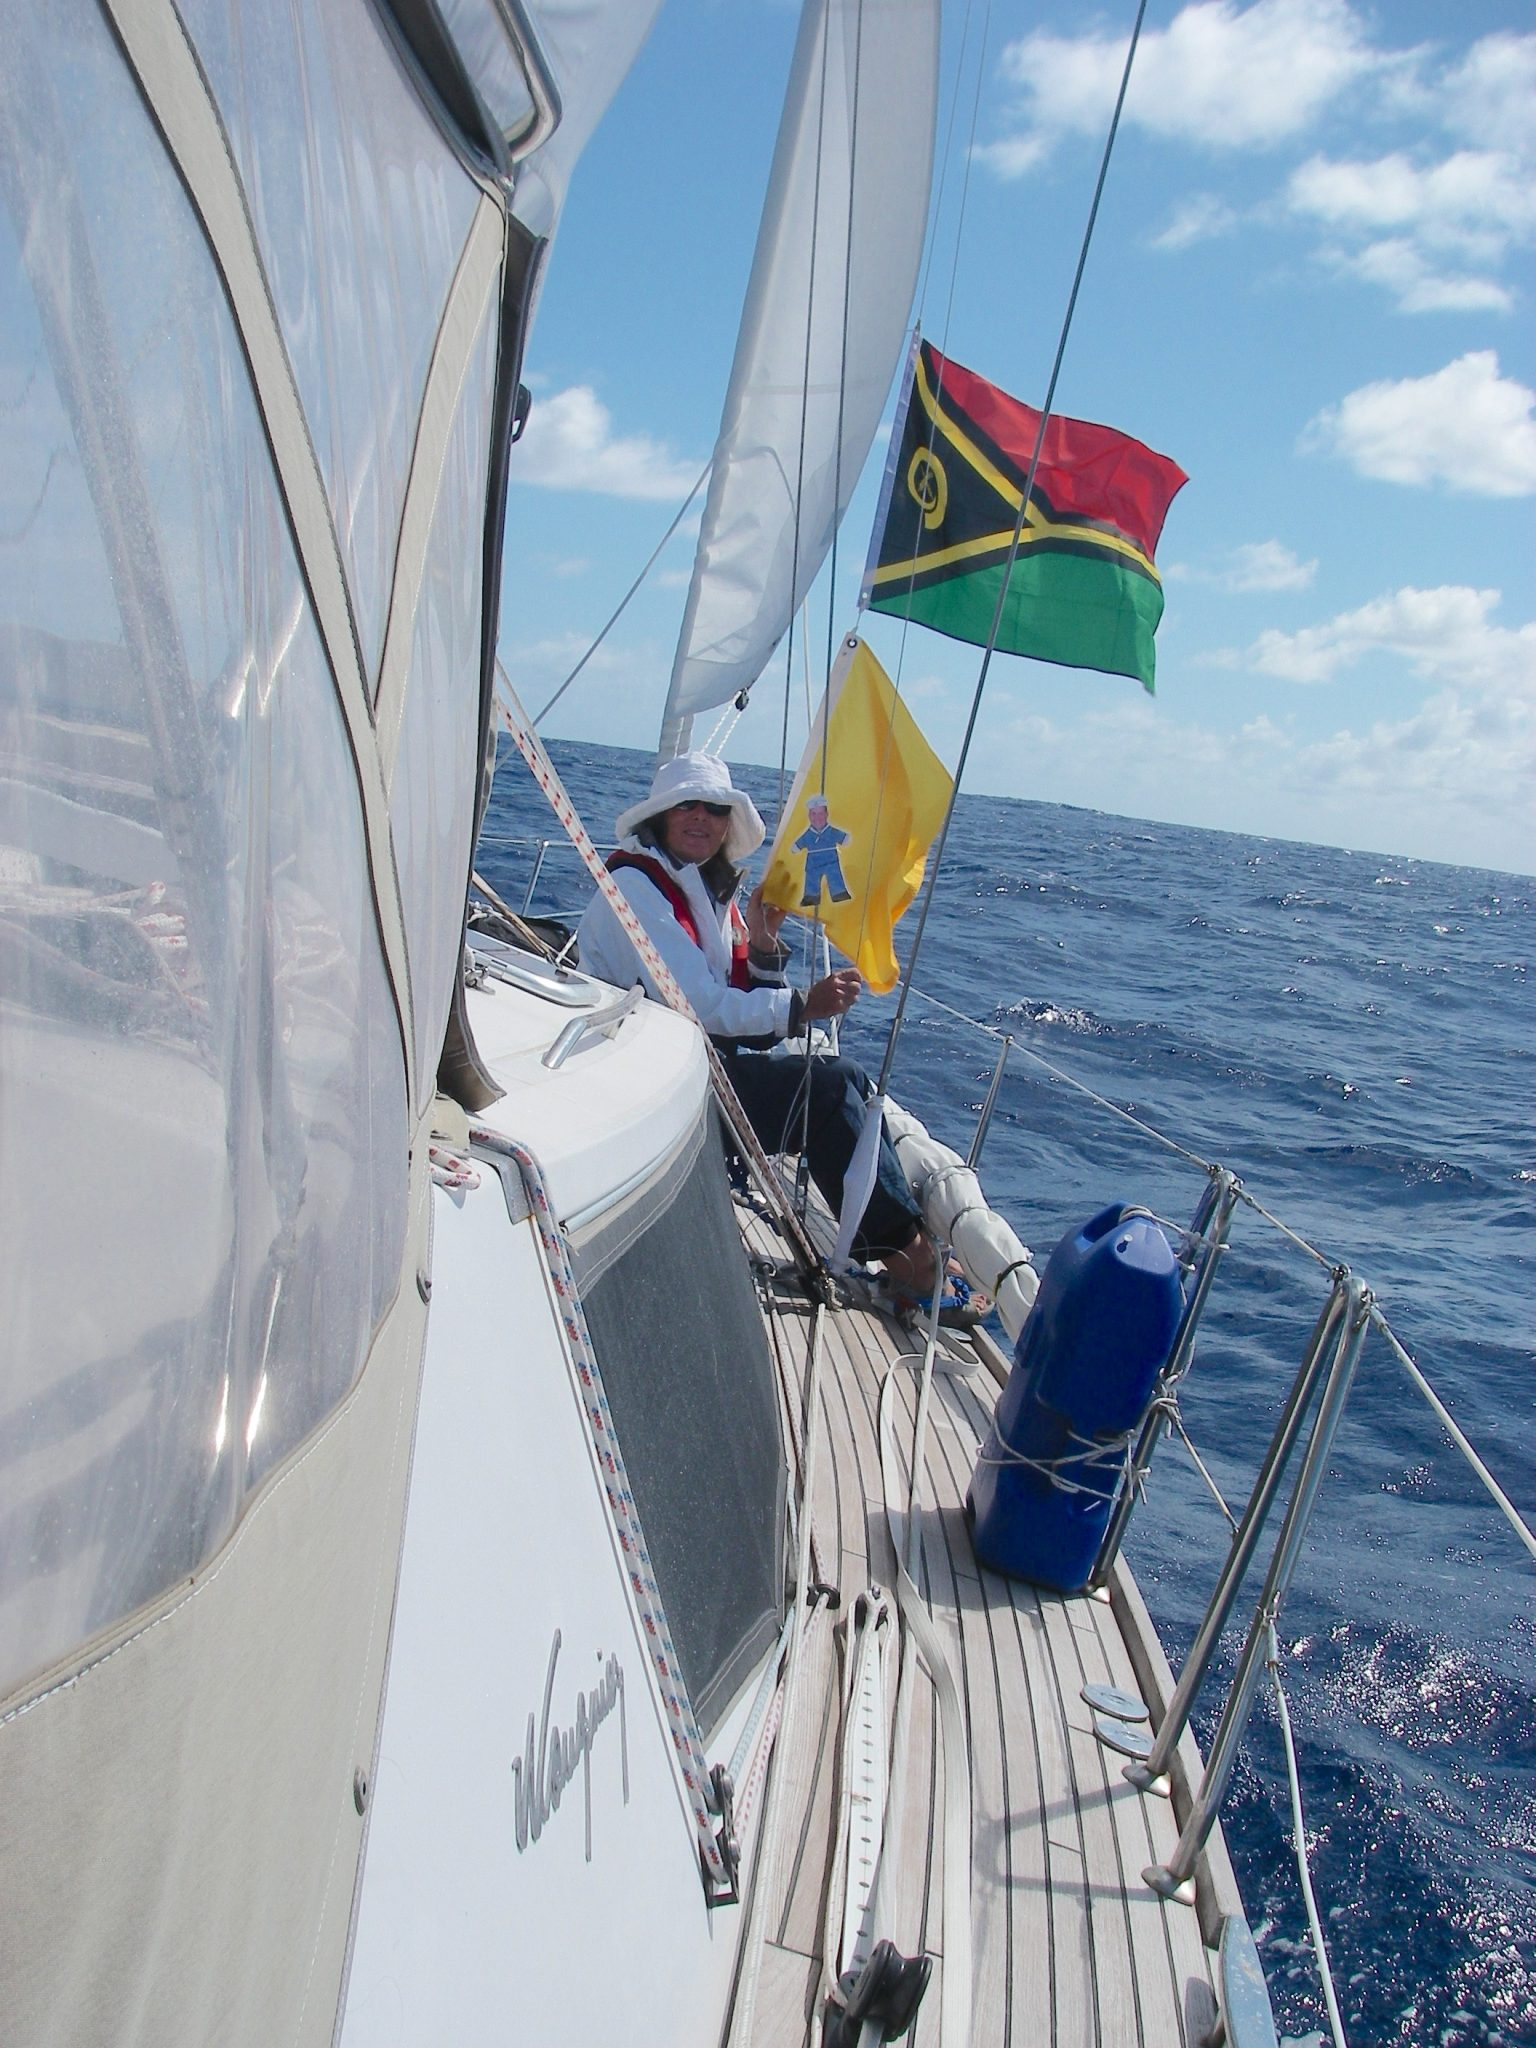 55. Flat Mr. Davis and Anne hoist the Republic of Vanuatu courtesy flag and the yellow Q flag as Joyful sails into Vanuatu national waters